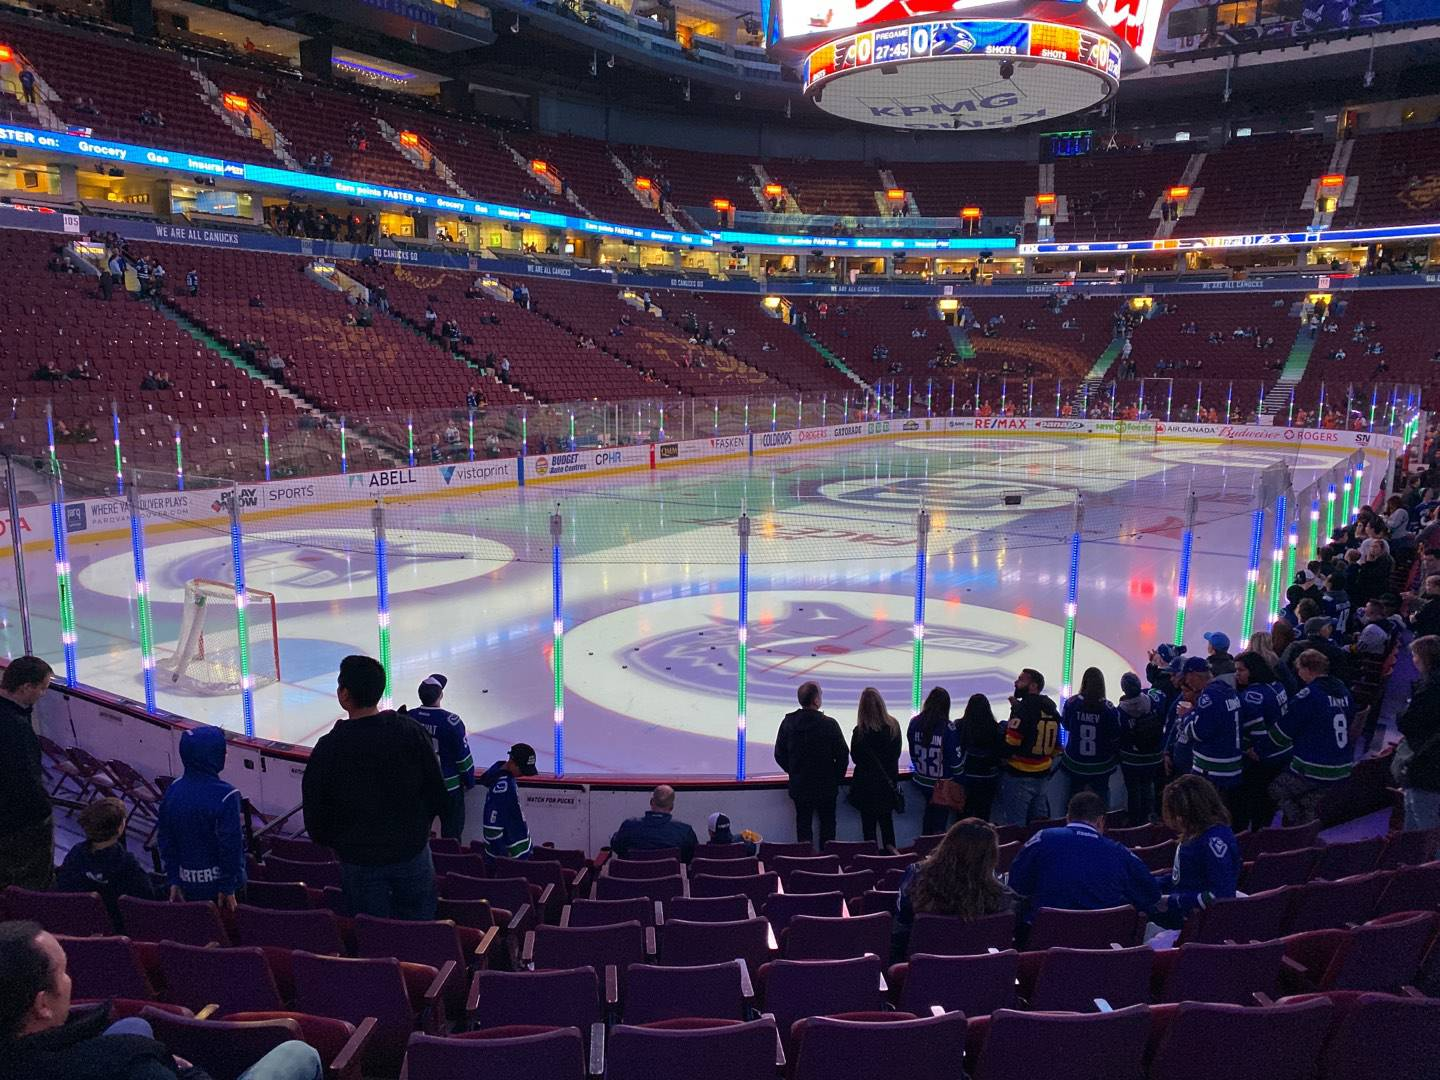 Rogers Arena Section 120 Row 11 Seat 114